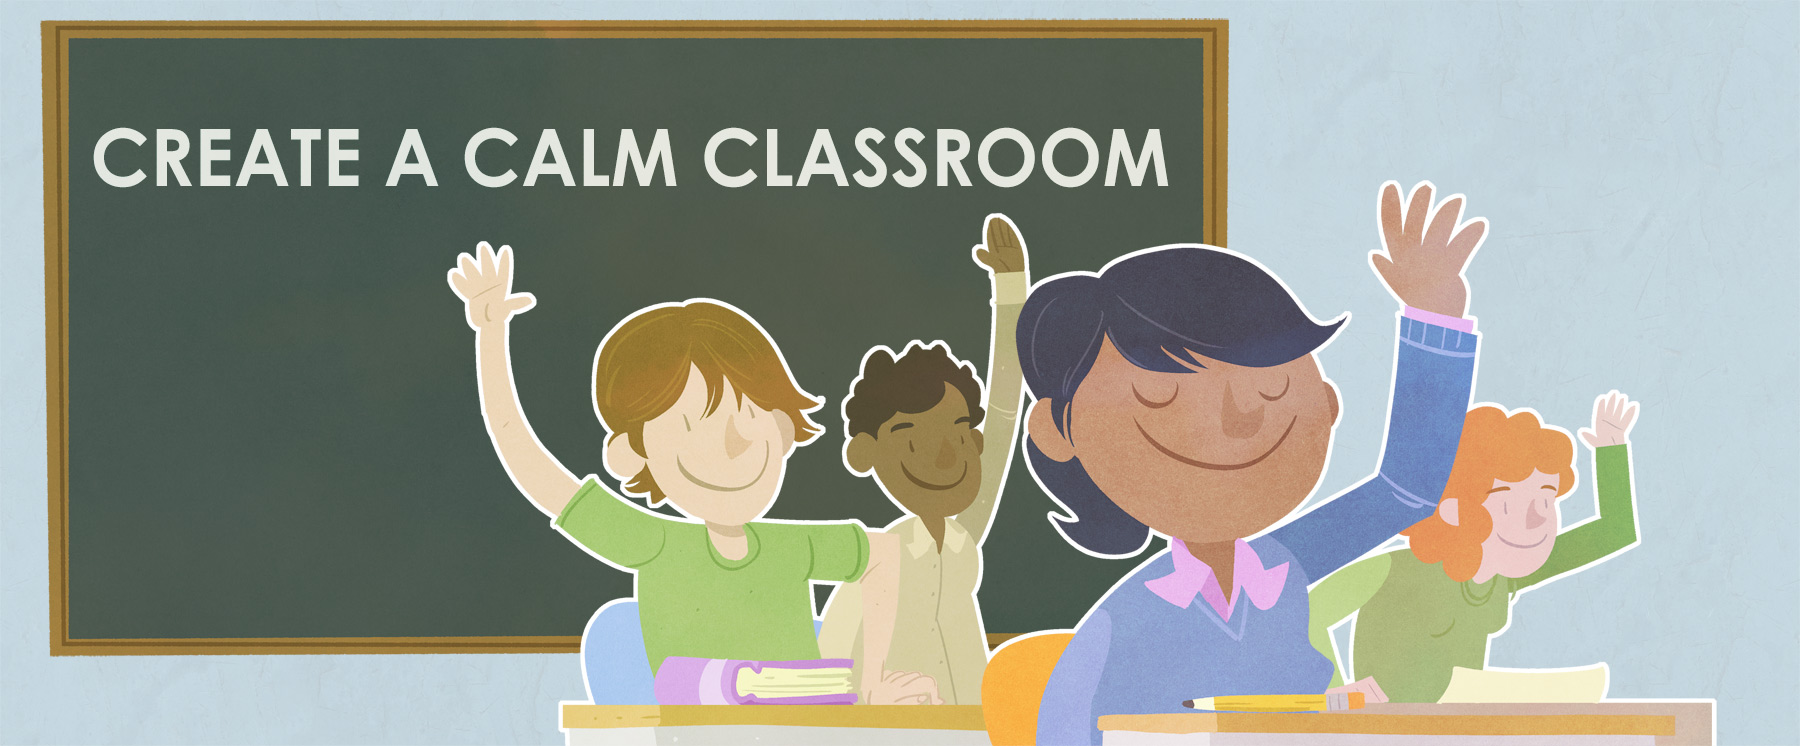 Create a Calm Classroom - Download Focus Posters